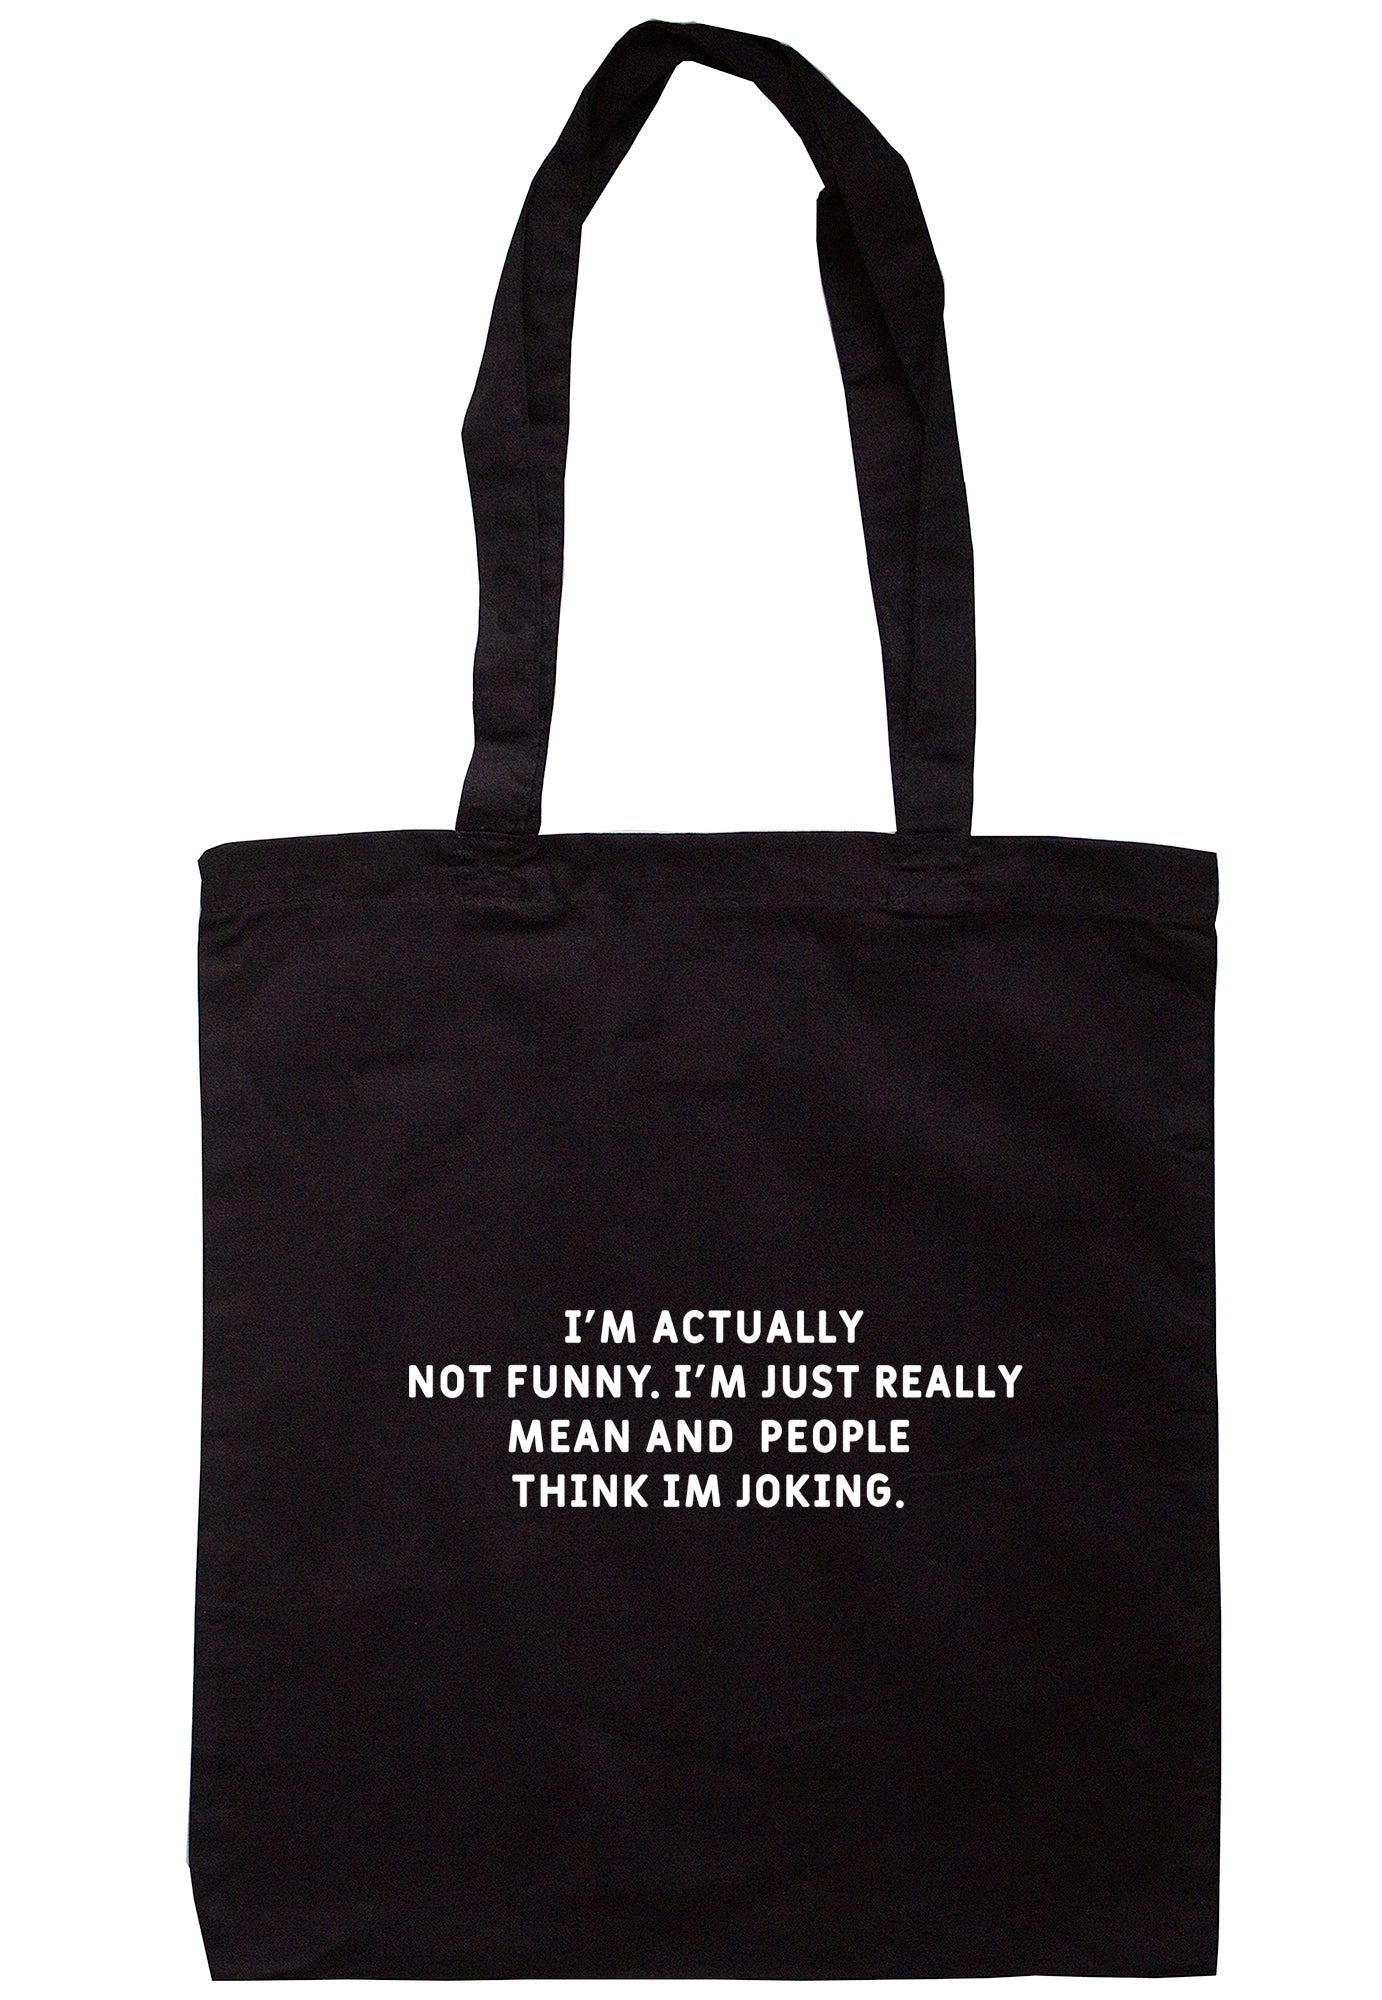 I'm Actually Not Funny. I'm Just Really Mean And People Think I'm Joking Tote Bag S1100 - Illustrated Identity Ltd.